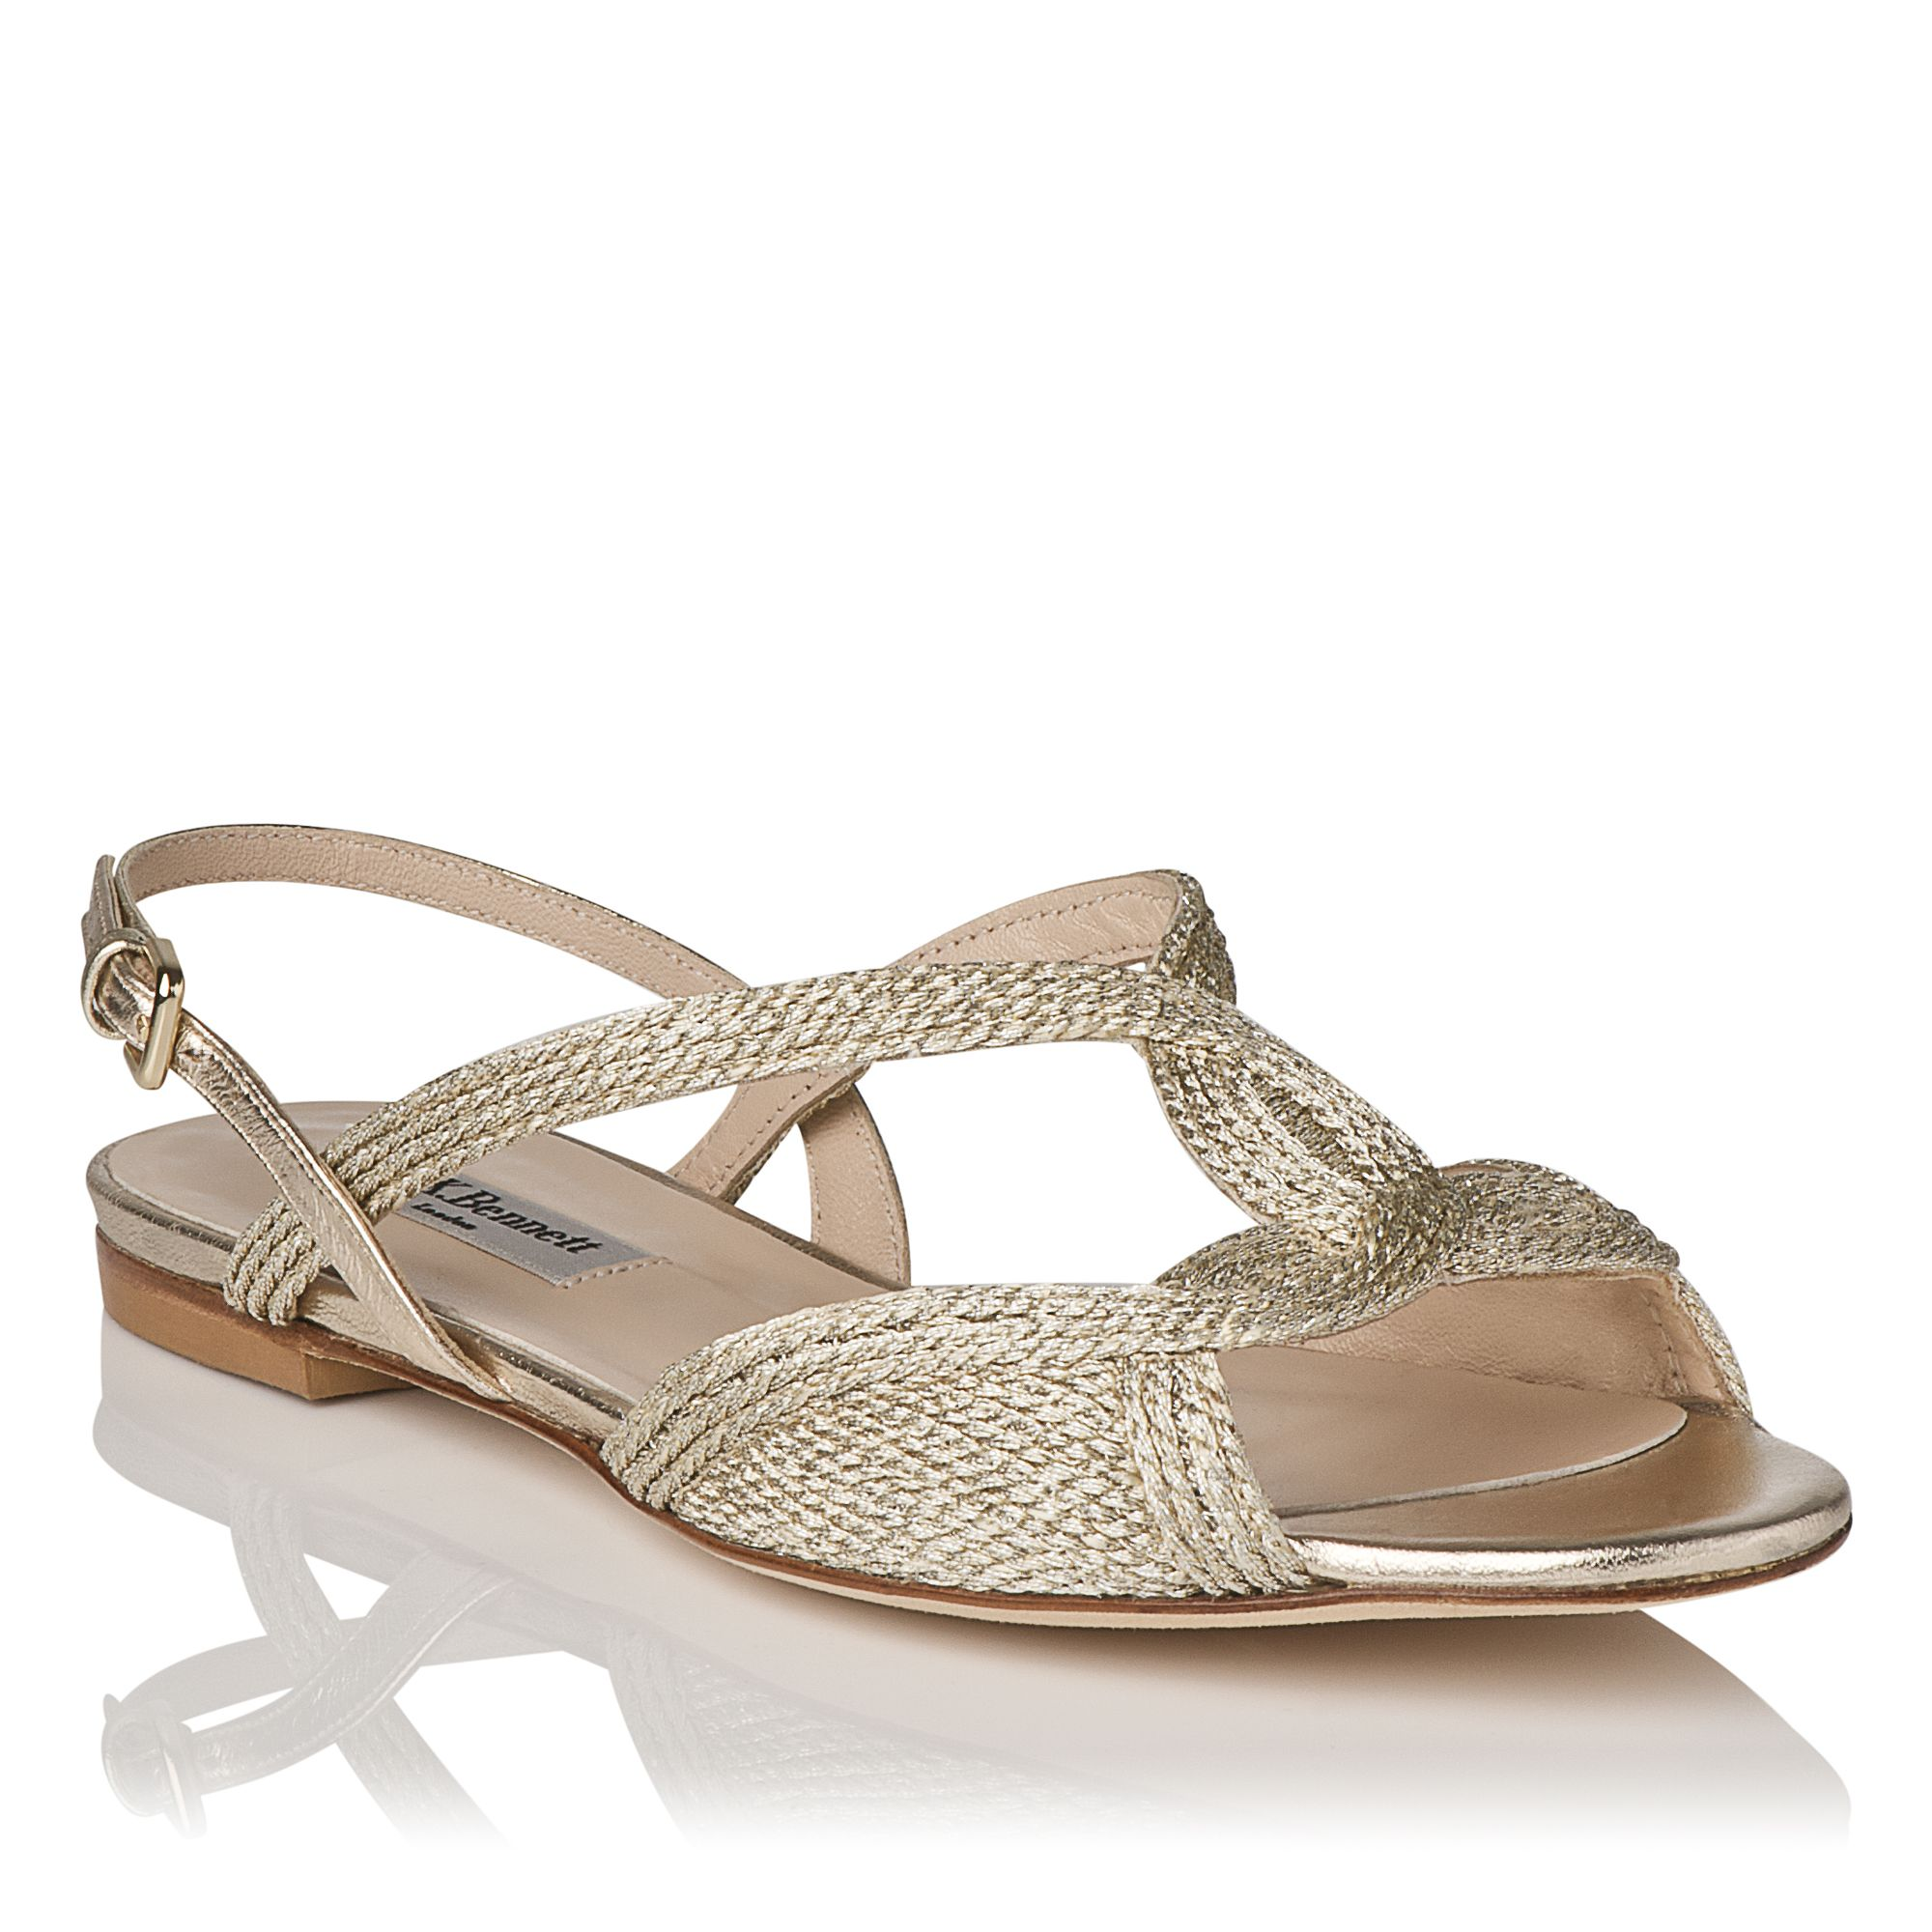 Sadie single sole flat sandals